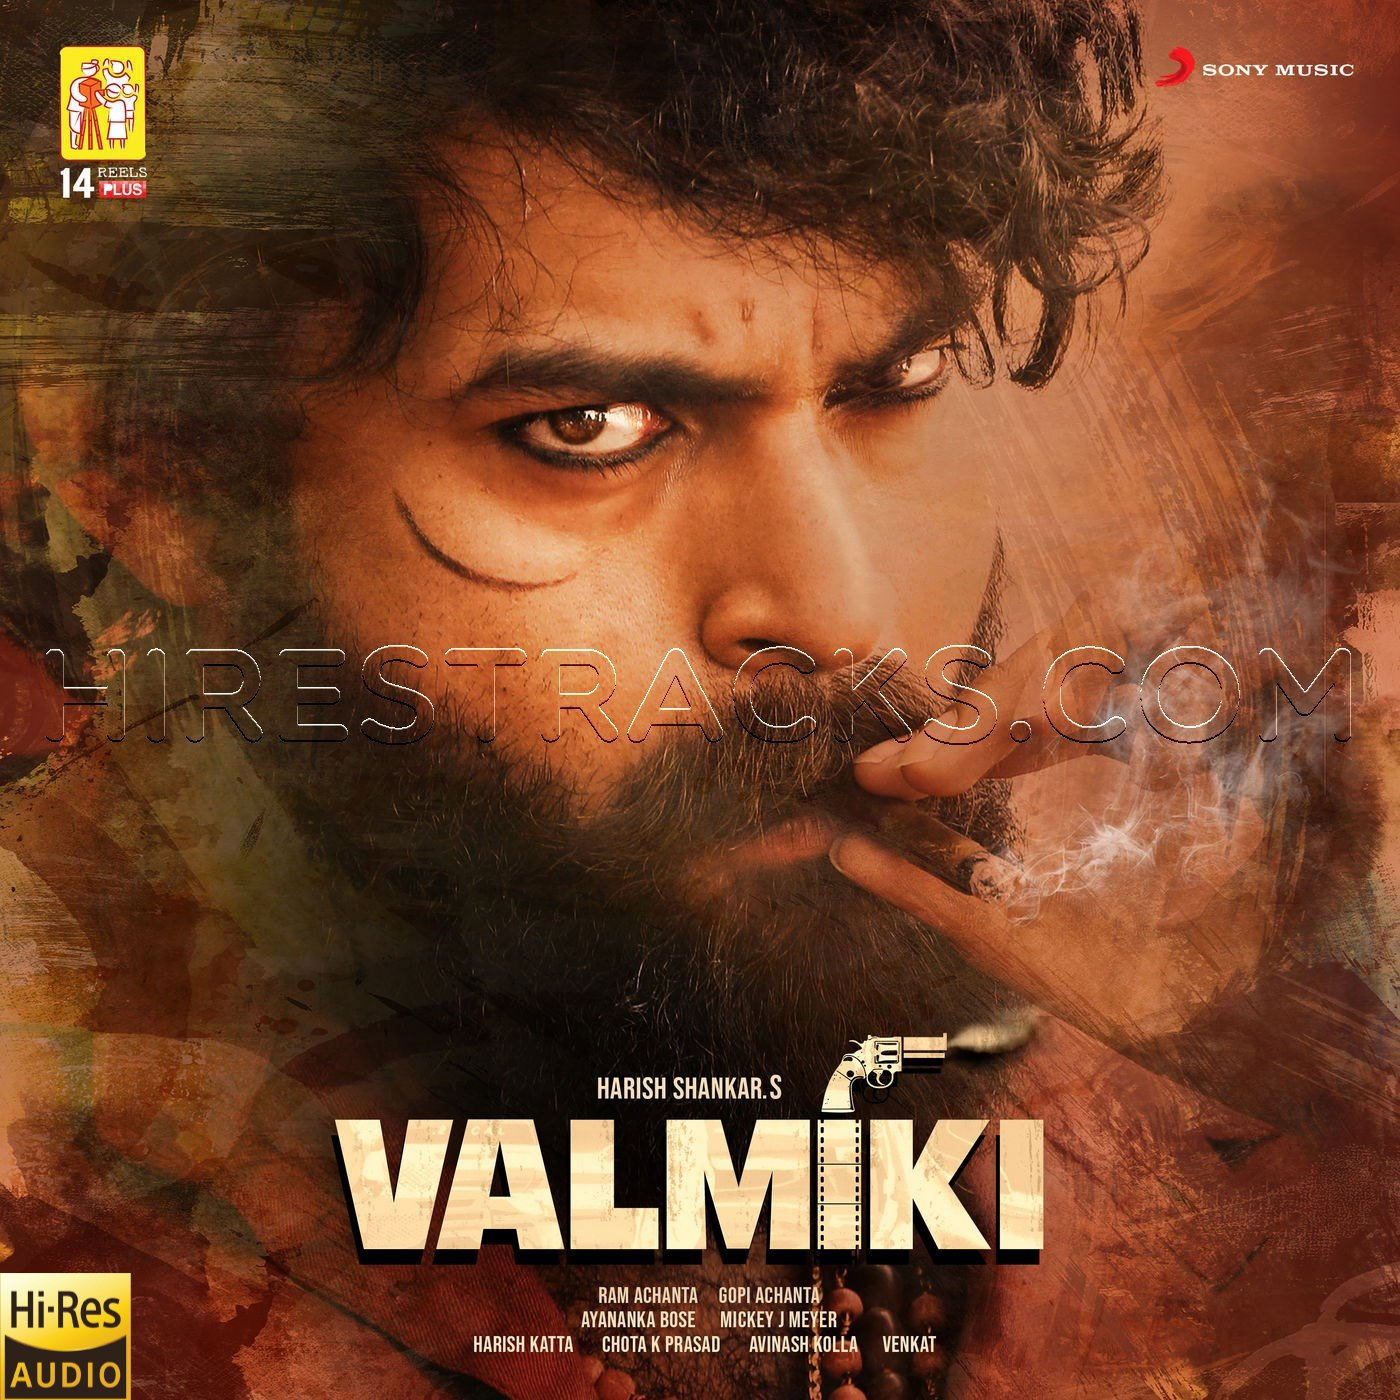 Valmiki (2019) (Mickey J Meyer) (Sony Music) [24 BIT – 48 KHZ] [DigitalRIP-FLAC]